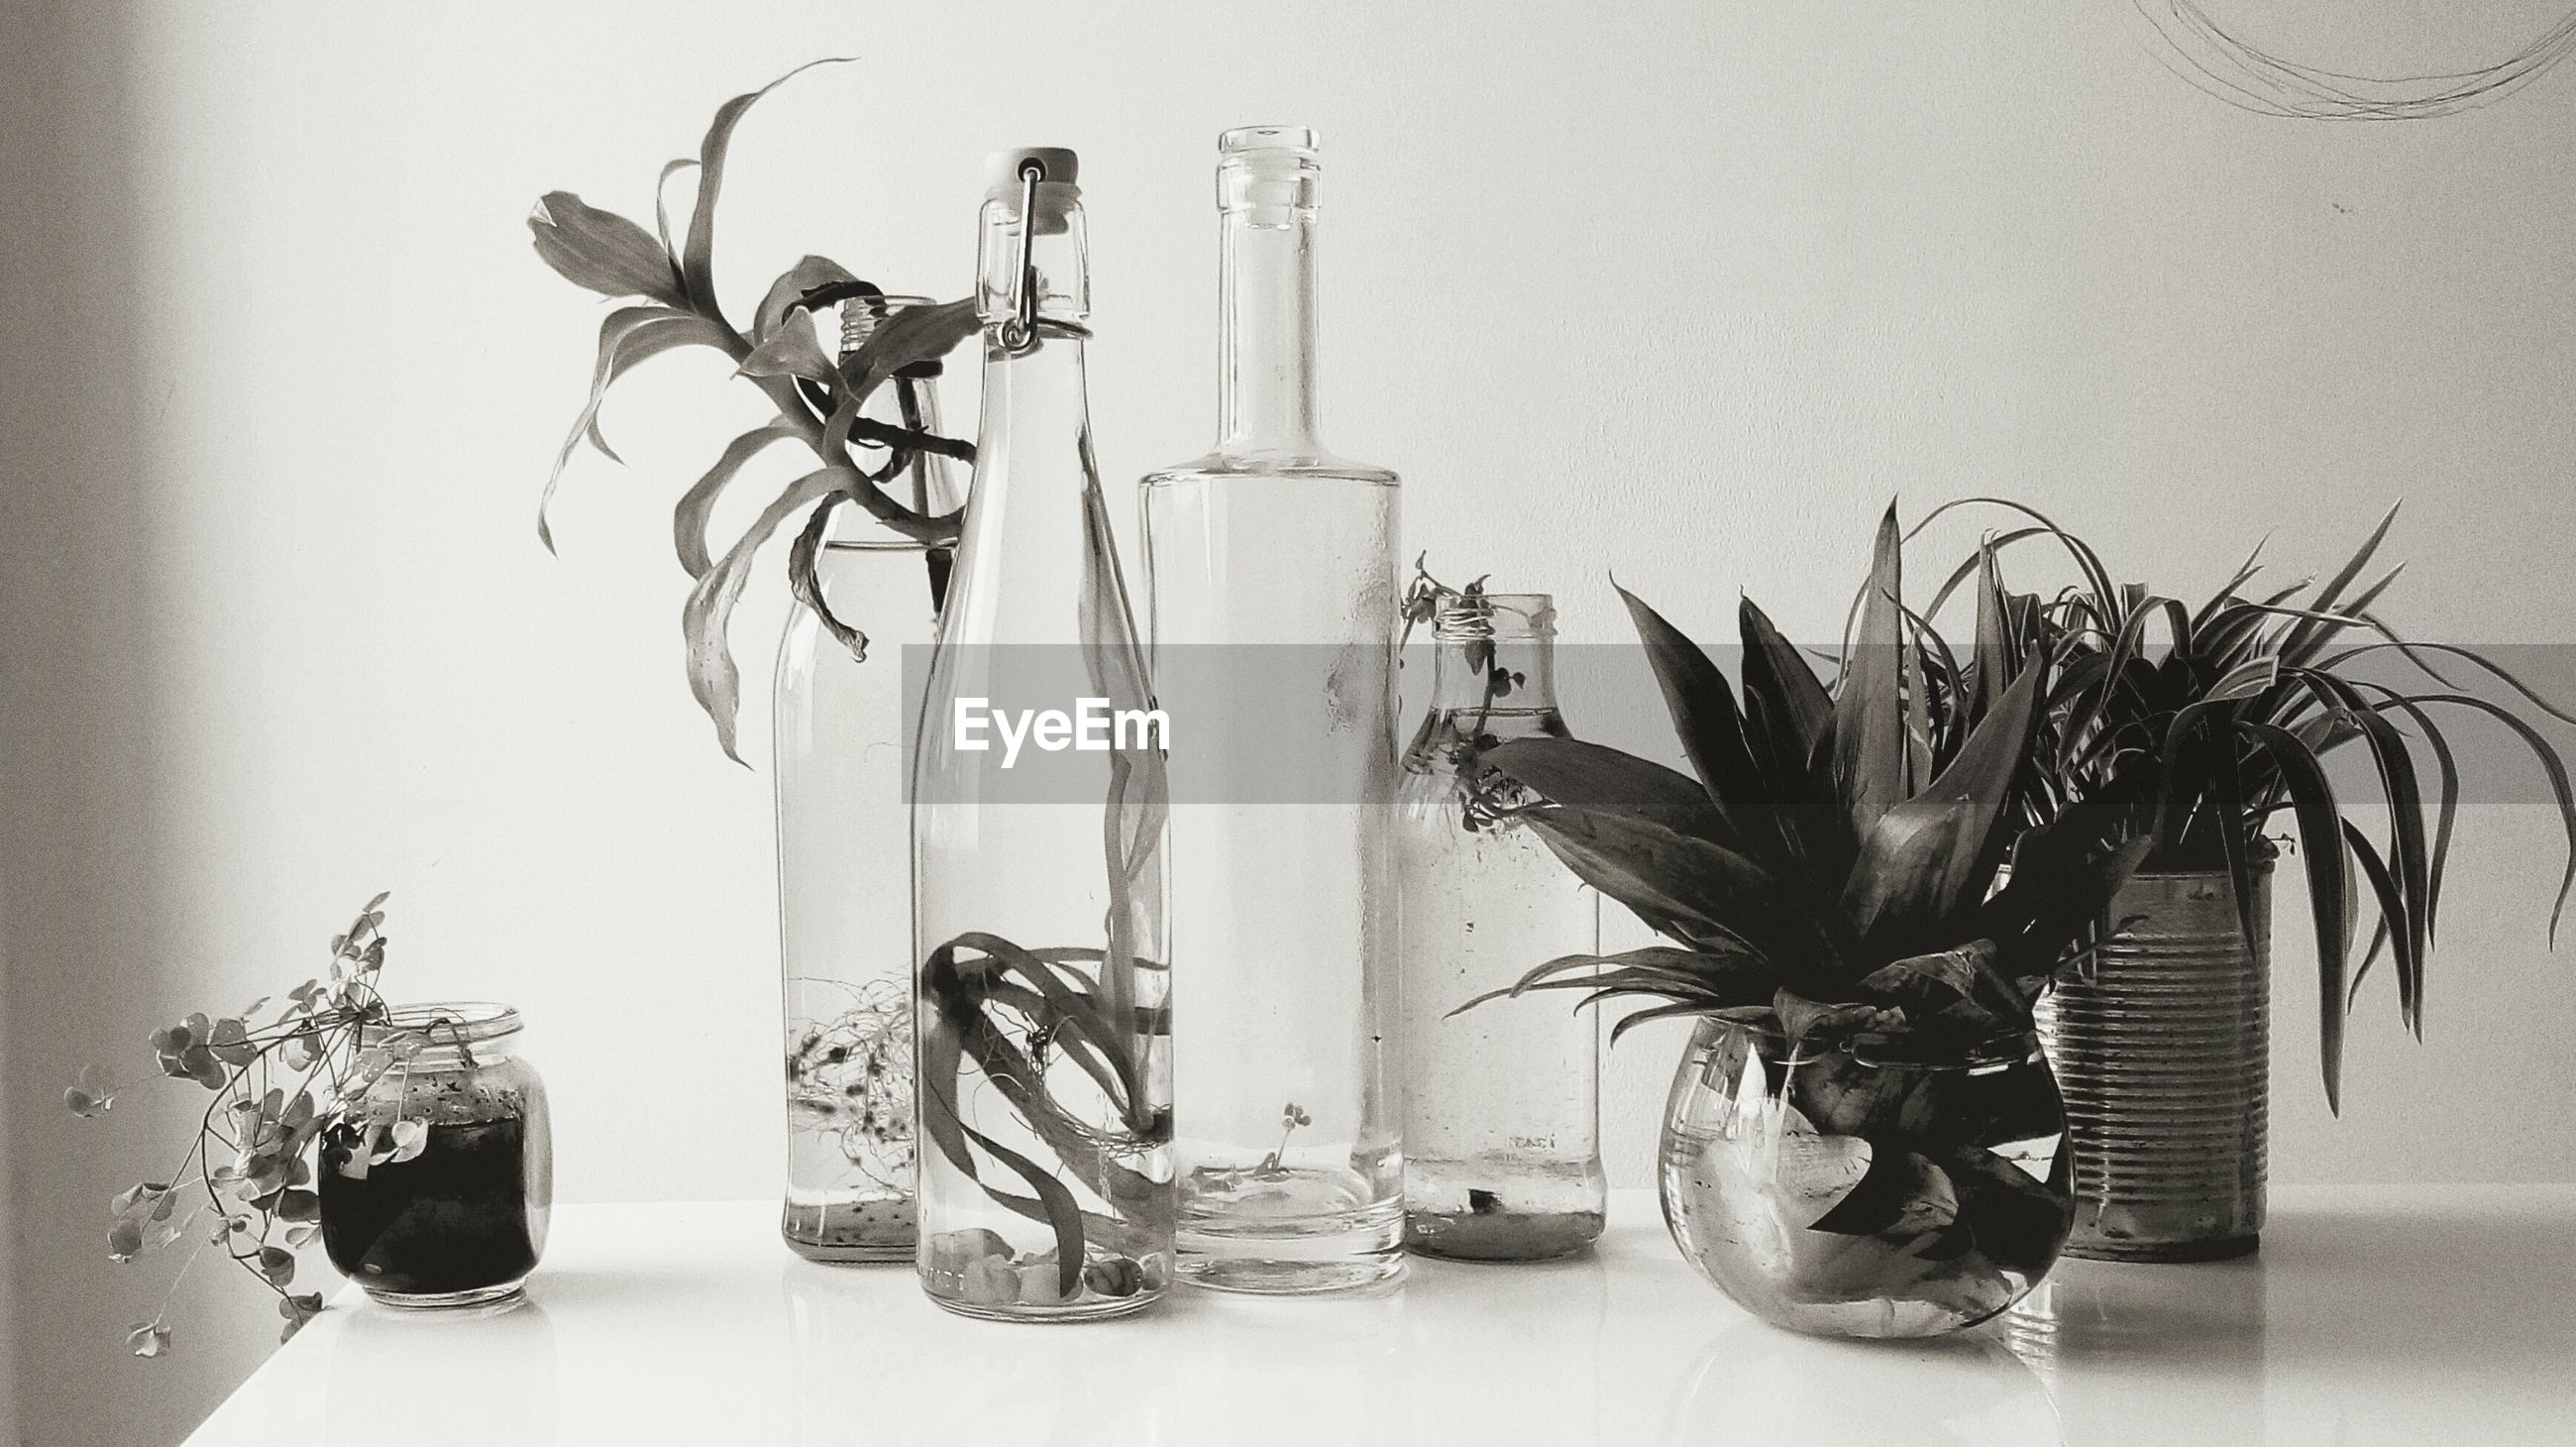 indoors, wall - building feature, potted plant, still life, bicycle, wall, table, metal, no people, plant, home interior, hanging, stationary, close-up, high angle view, built structure, day, shadow, architecture, vase